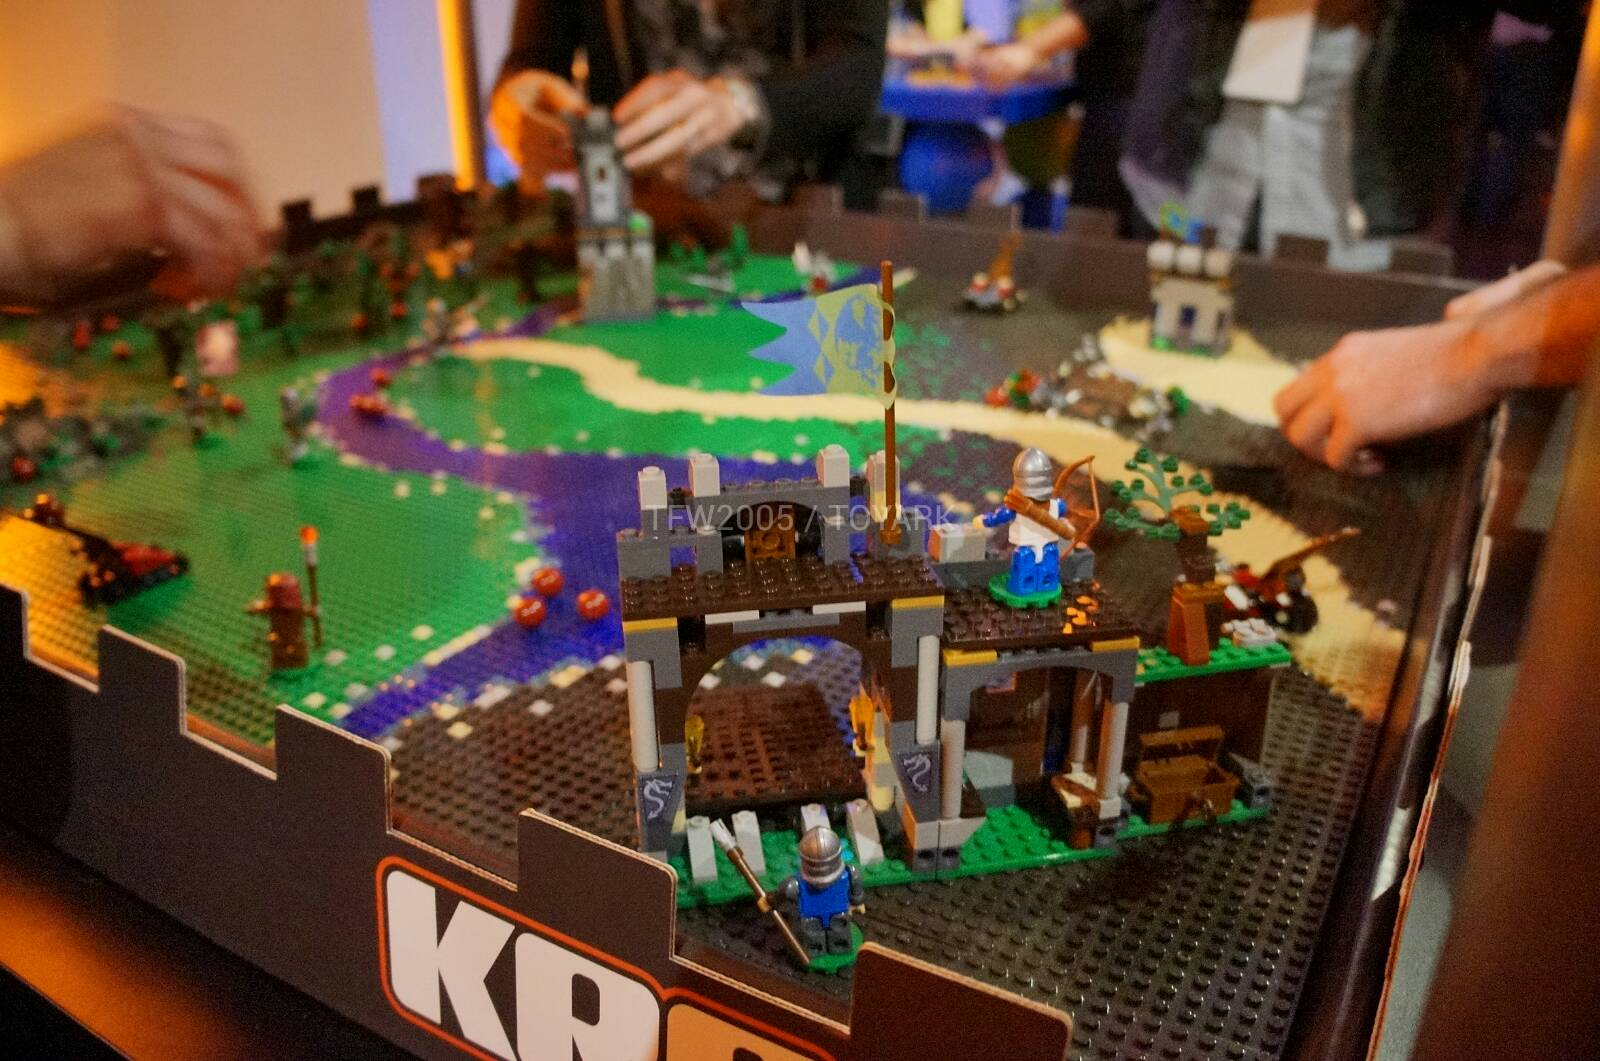 kre-o dungeons and dragons instructions